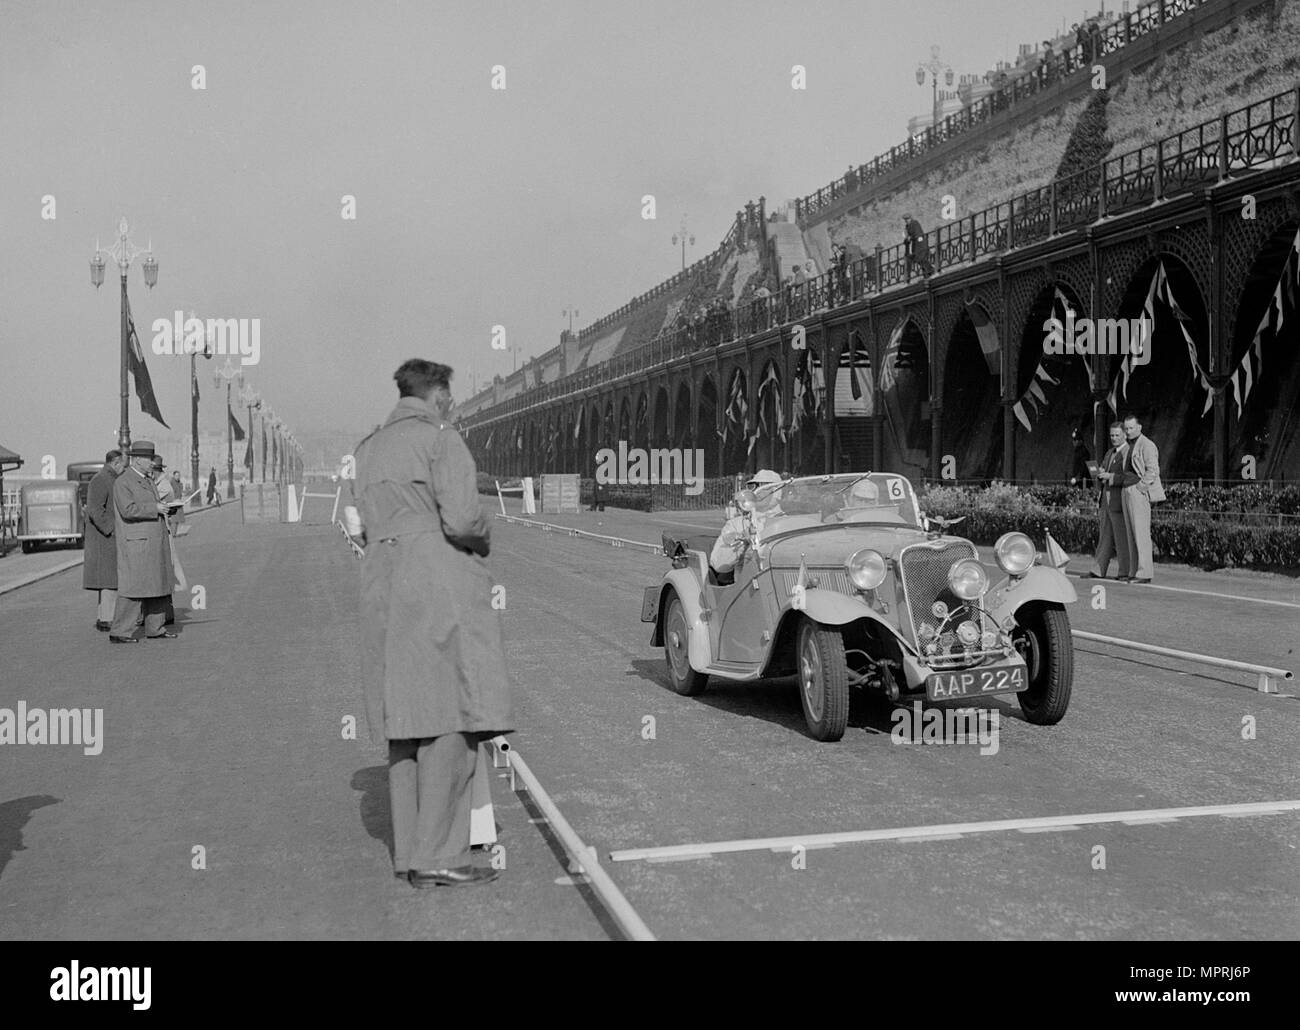 Singer Nine sports of CE Cole at the RAC Rally, Madeira Drive, Brighton, 1939. Artist: Bill Brunell. - Stock Image